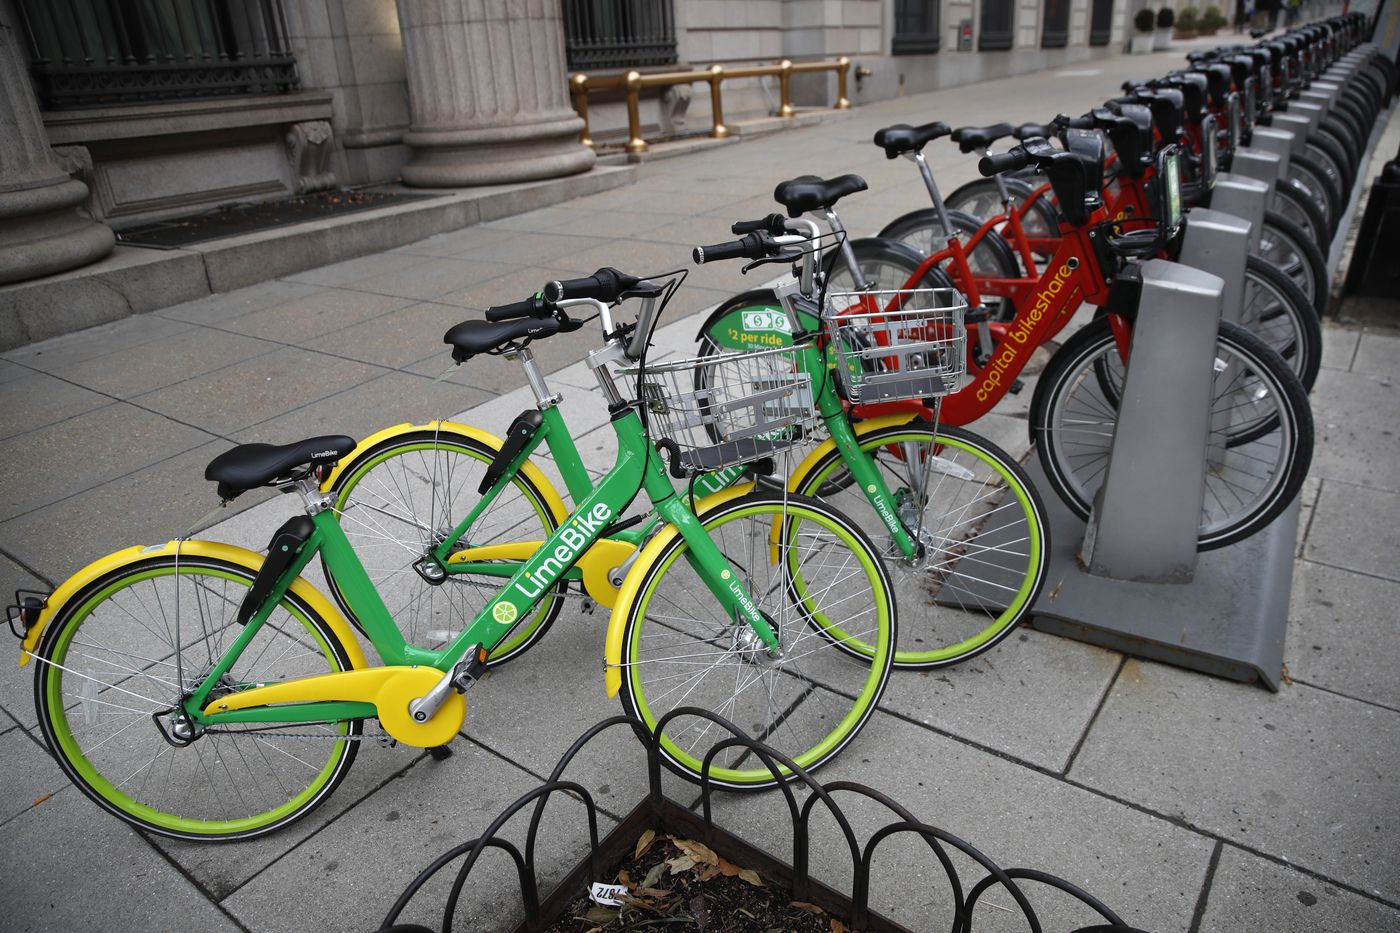 As scooters, bikes, and transit startups flood the streets, cities